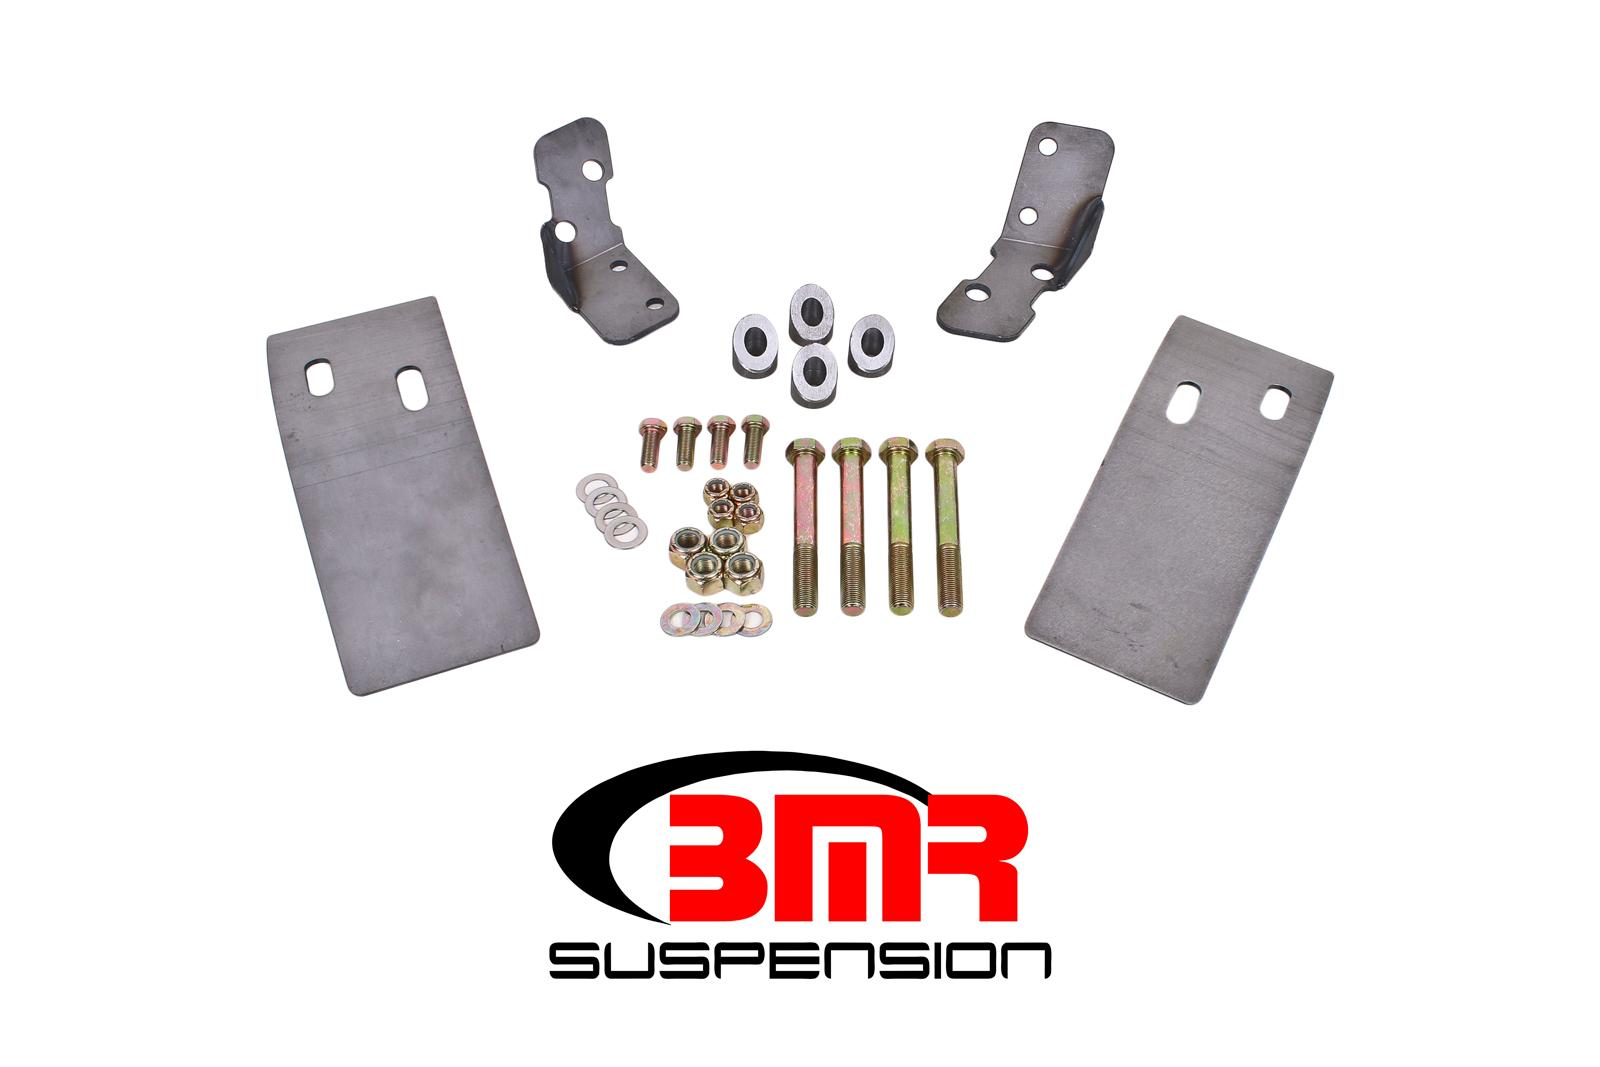 1979-2004 Ford Mustang BMR Suspension Plate Style Torque Box Reinforcement Plate Kit - Upper Only